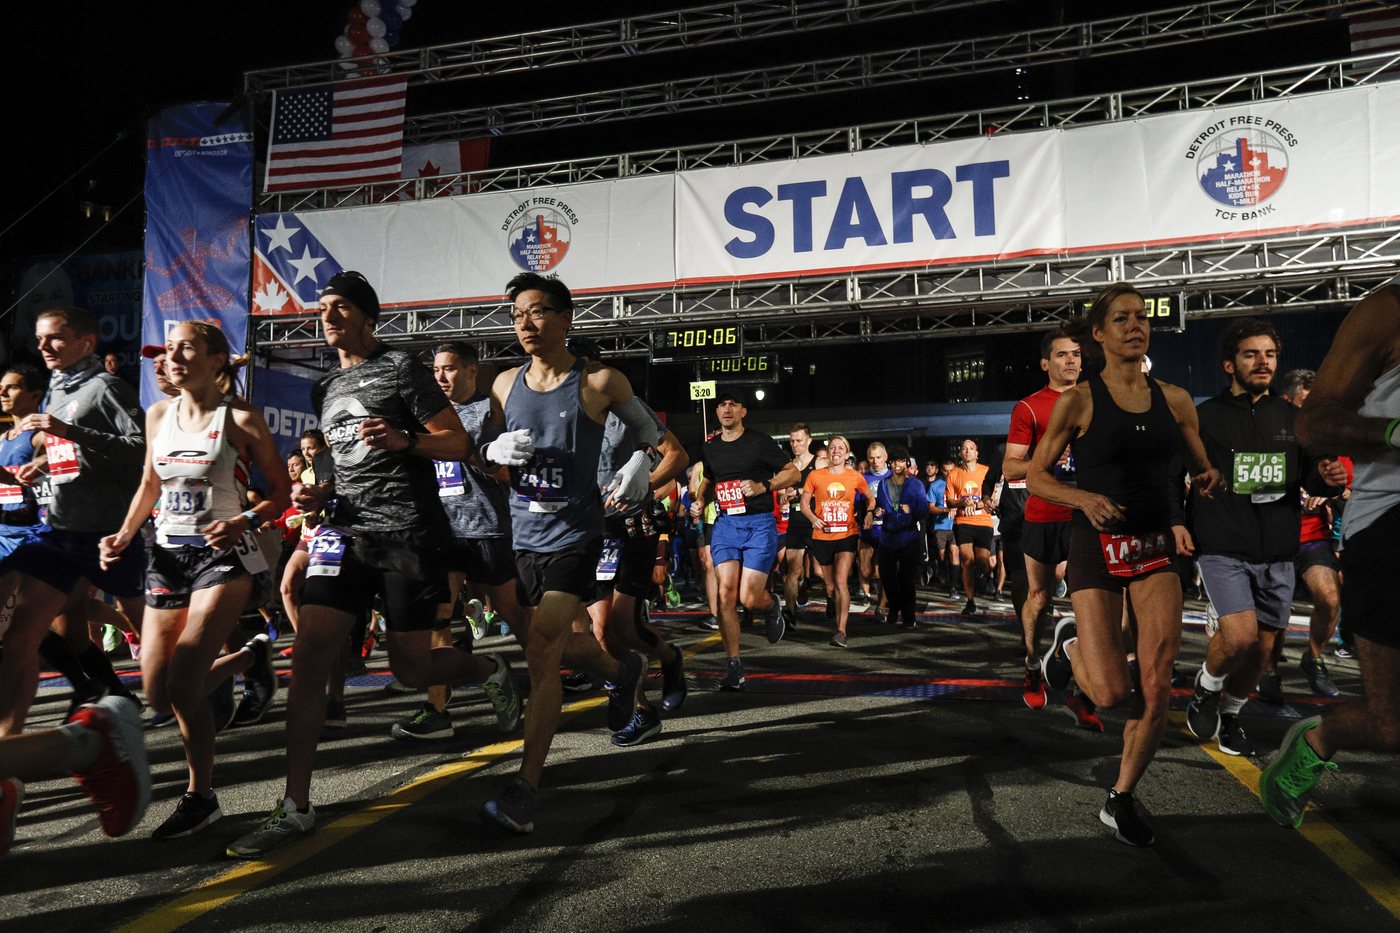 Detroit Free Press/TCF Bank Marathon